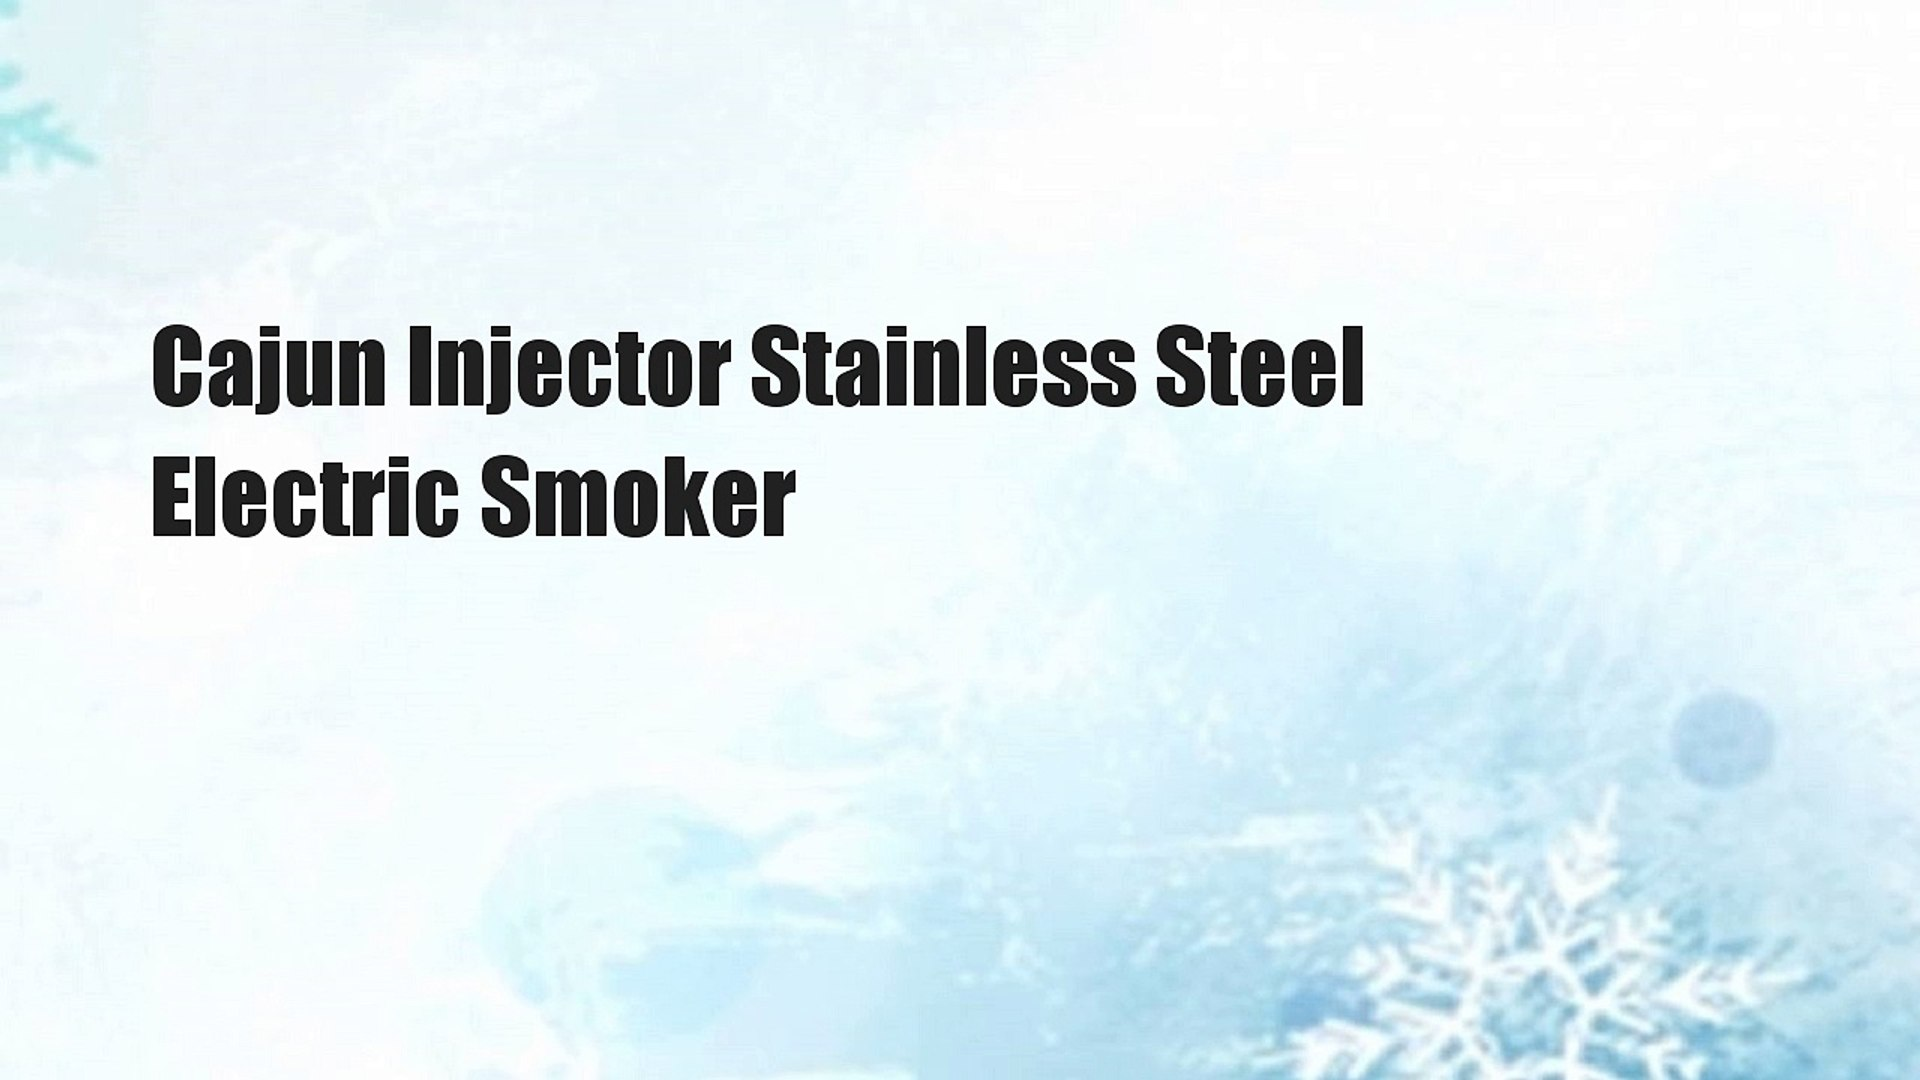 Cajun Injector Stainless Steel Electric